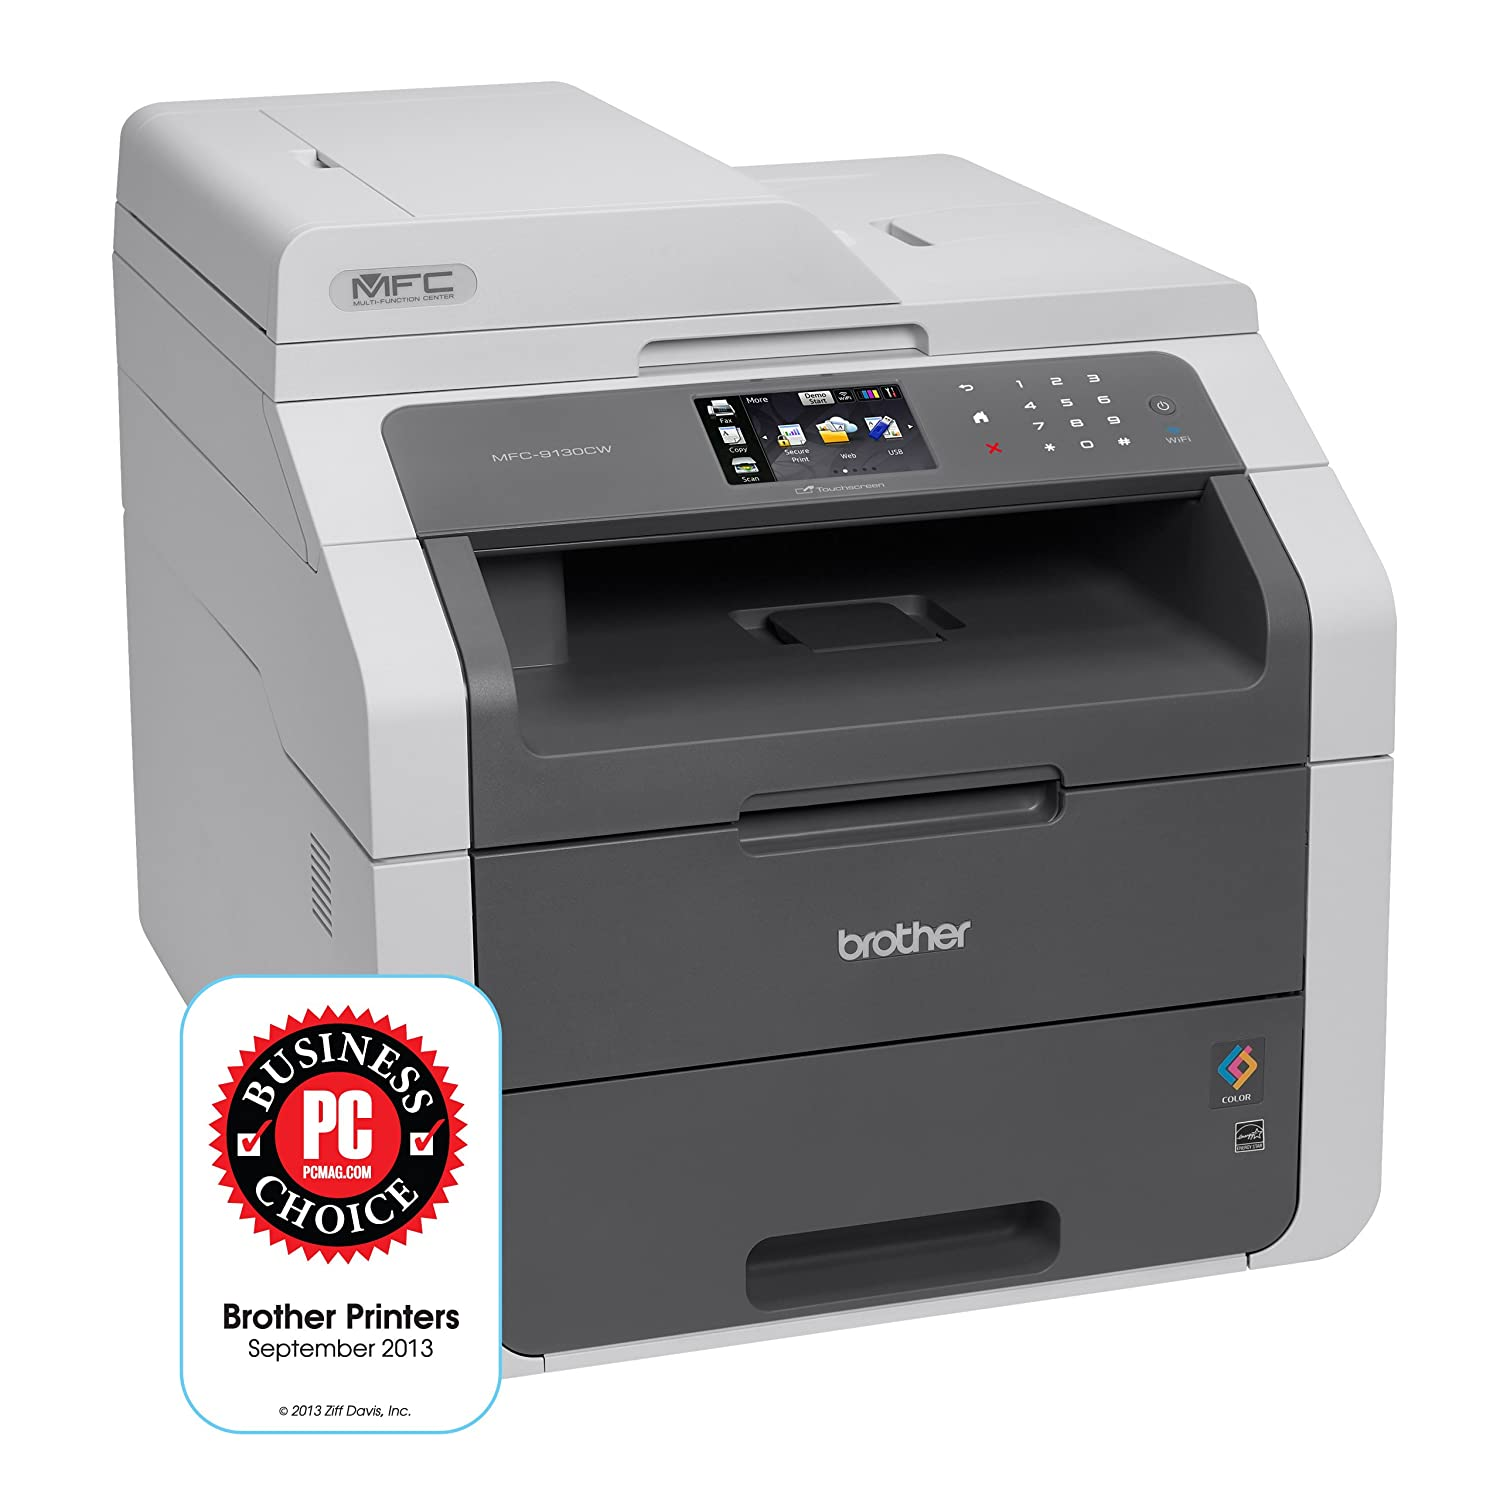 BROTHER MFC-9130CW SCANNER DRIVERS FOR WINDOWS DOWNLOAD